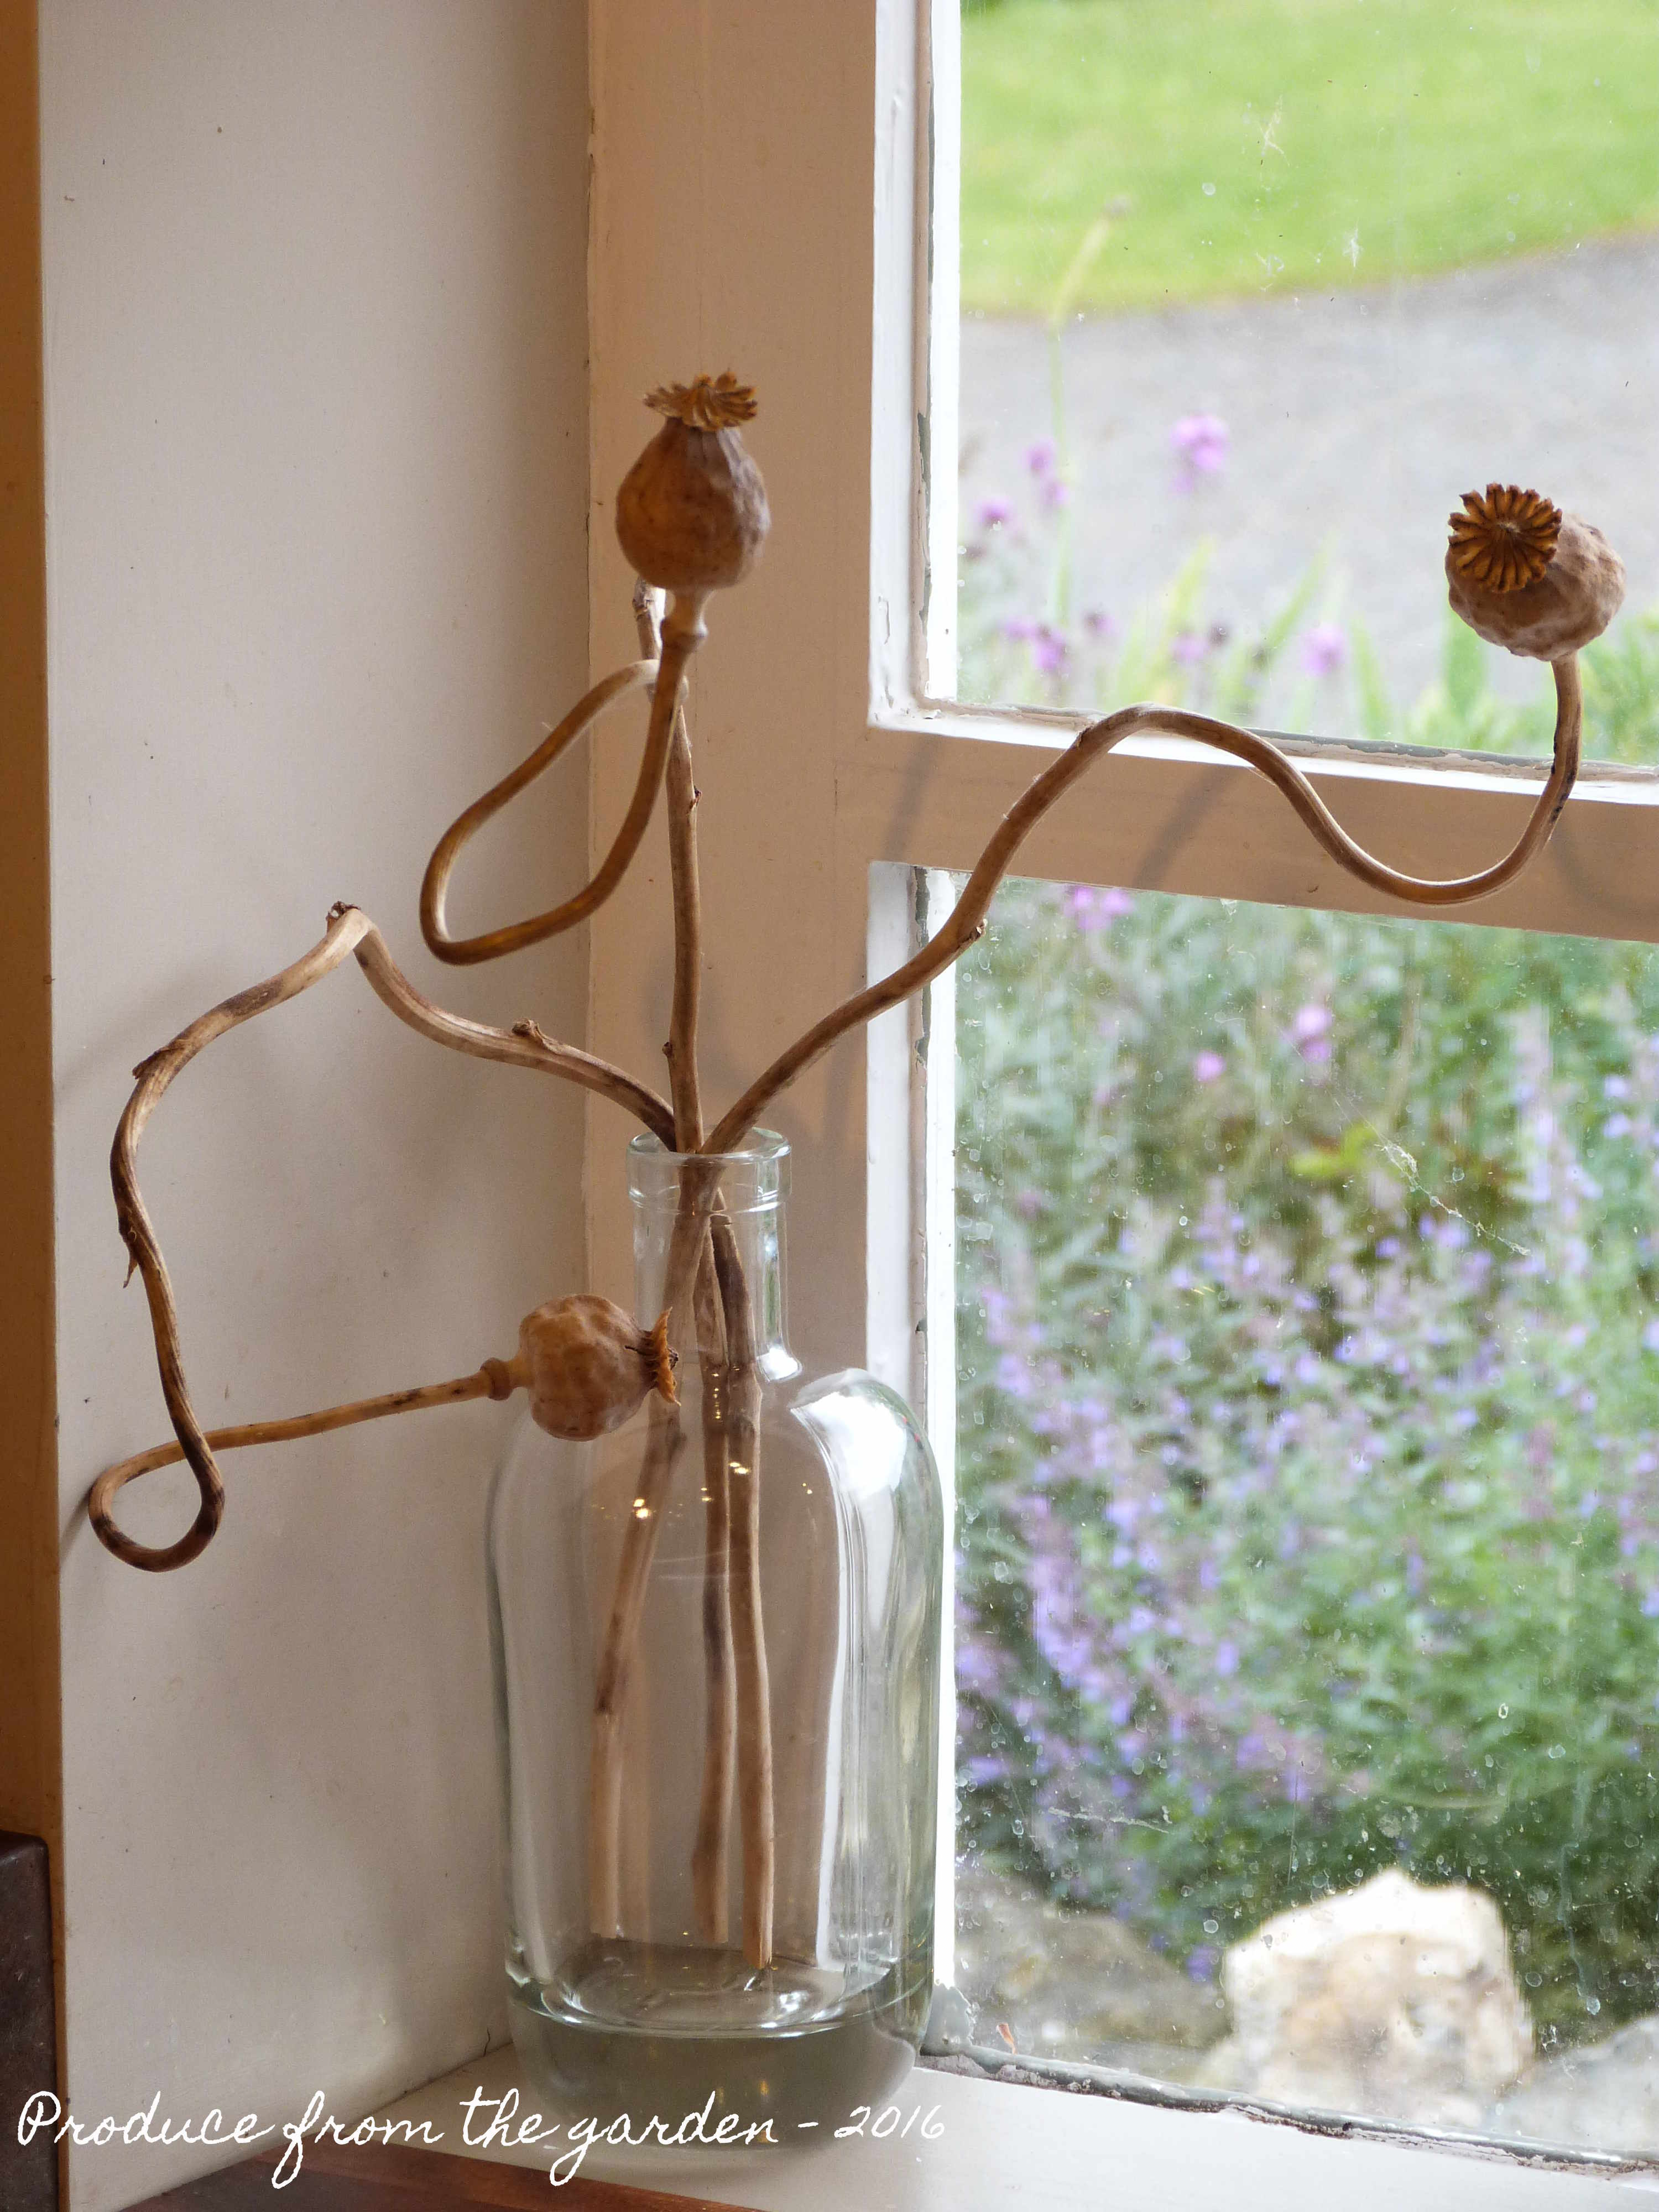 Drying Poppy Seed Heads Produce From The Garden